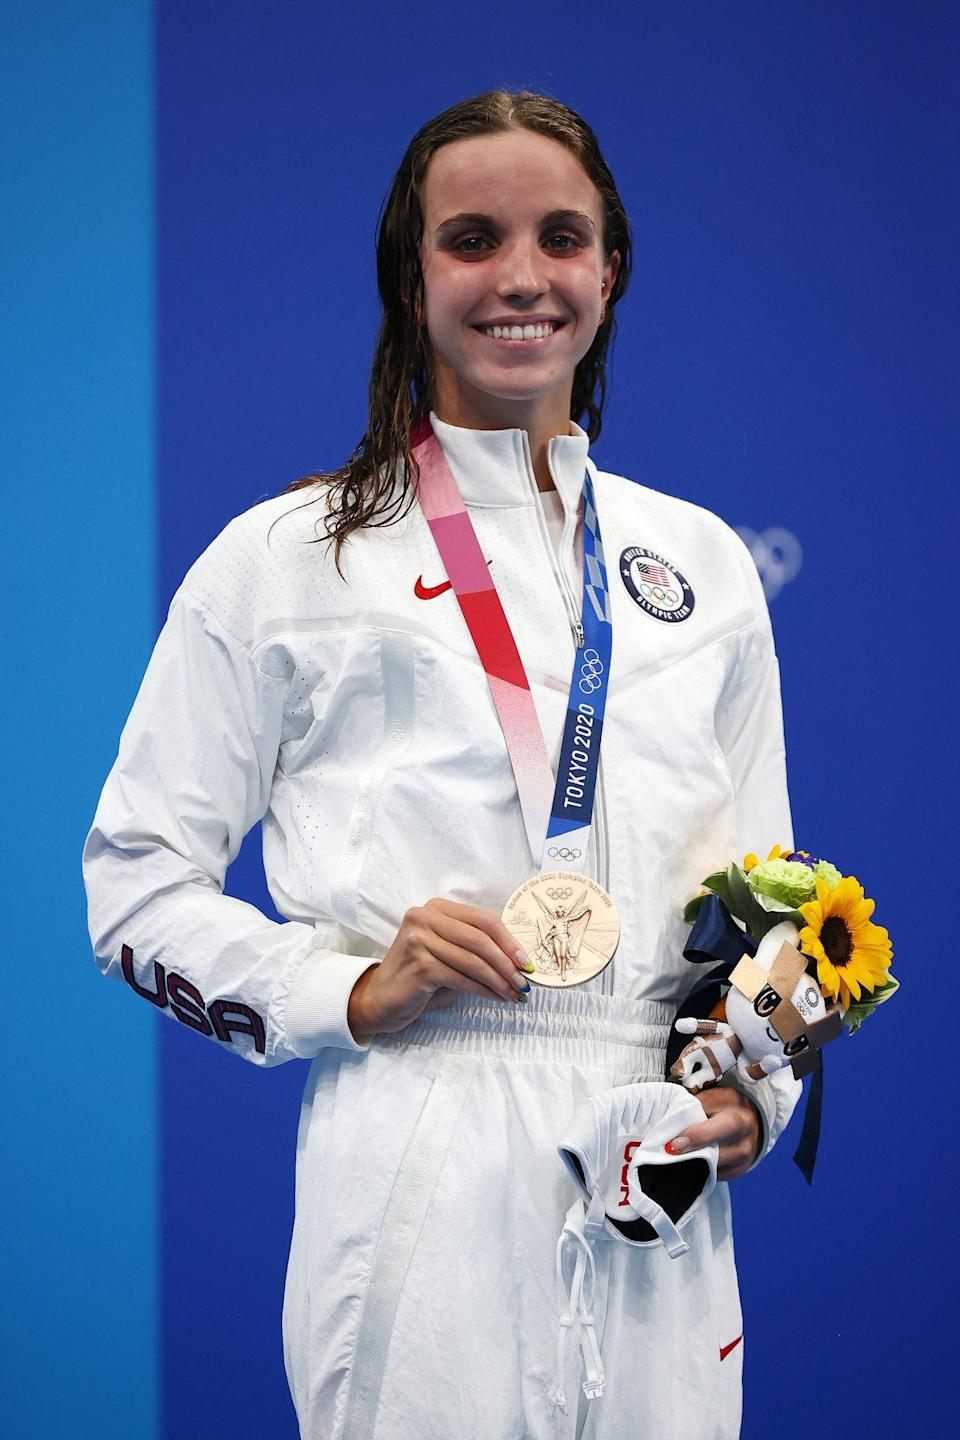 """<p>Biography: 19 years old</p> <p>Event: Women's 100m backstroke (swimming)</p> <p>Quote: """"I really went out there and gave it my all. It was a super-stacked heat, so the fact that I came away with a medal, I really can't ask for much more.''</p>"""